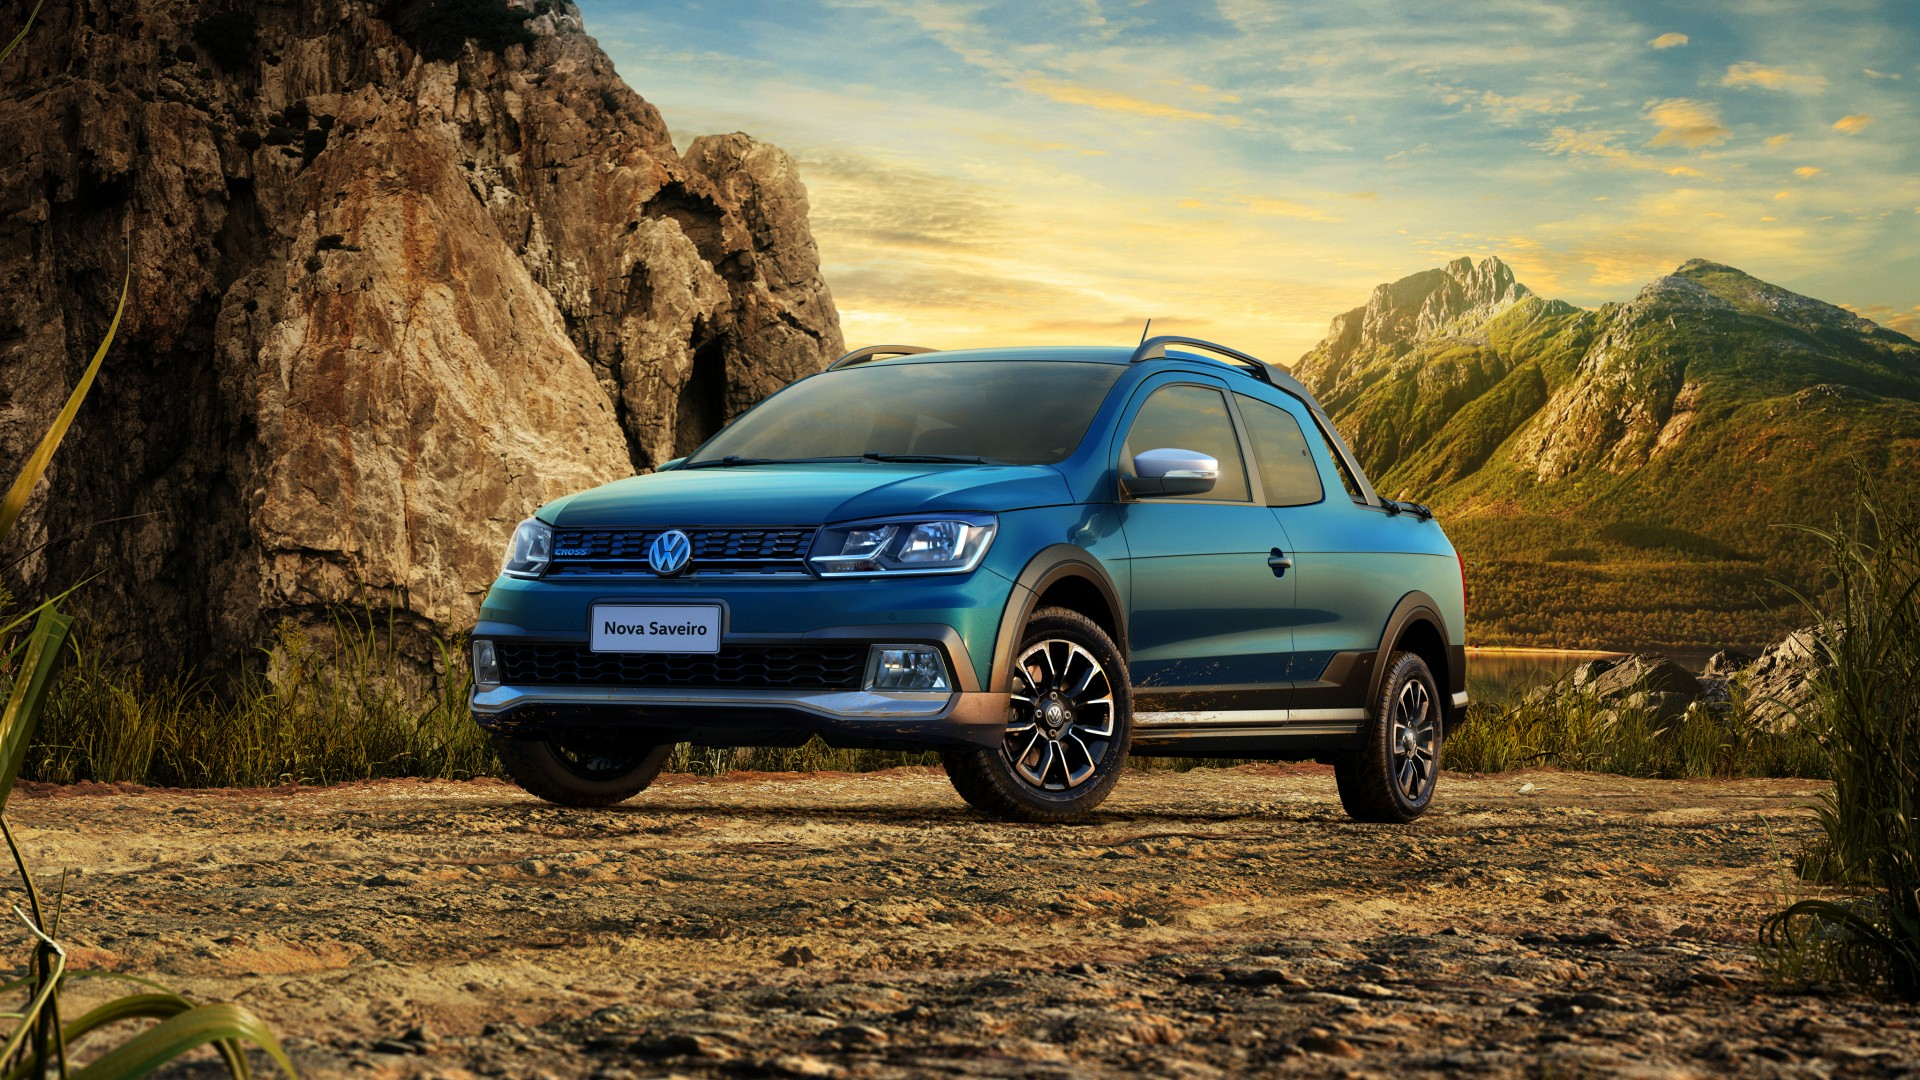 Wallpaper Volkswagen Saveiro Cross CD pickup blue Cars Bikes 1920x1080